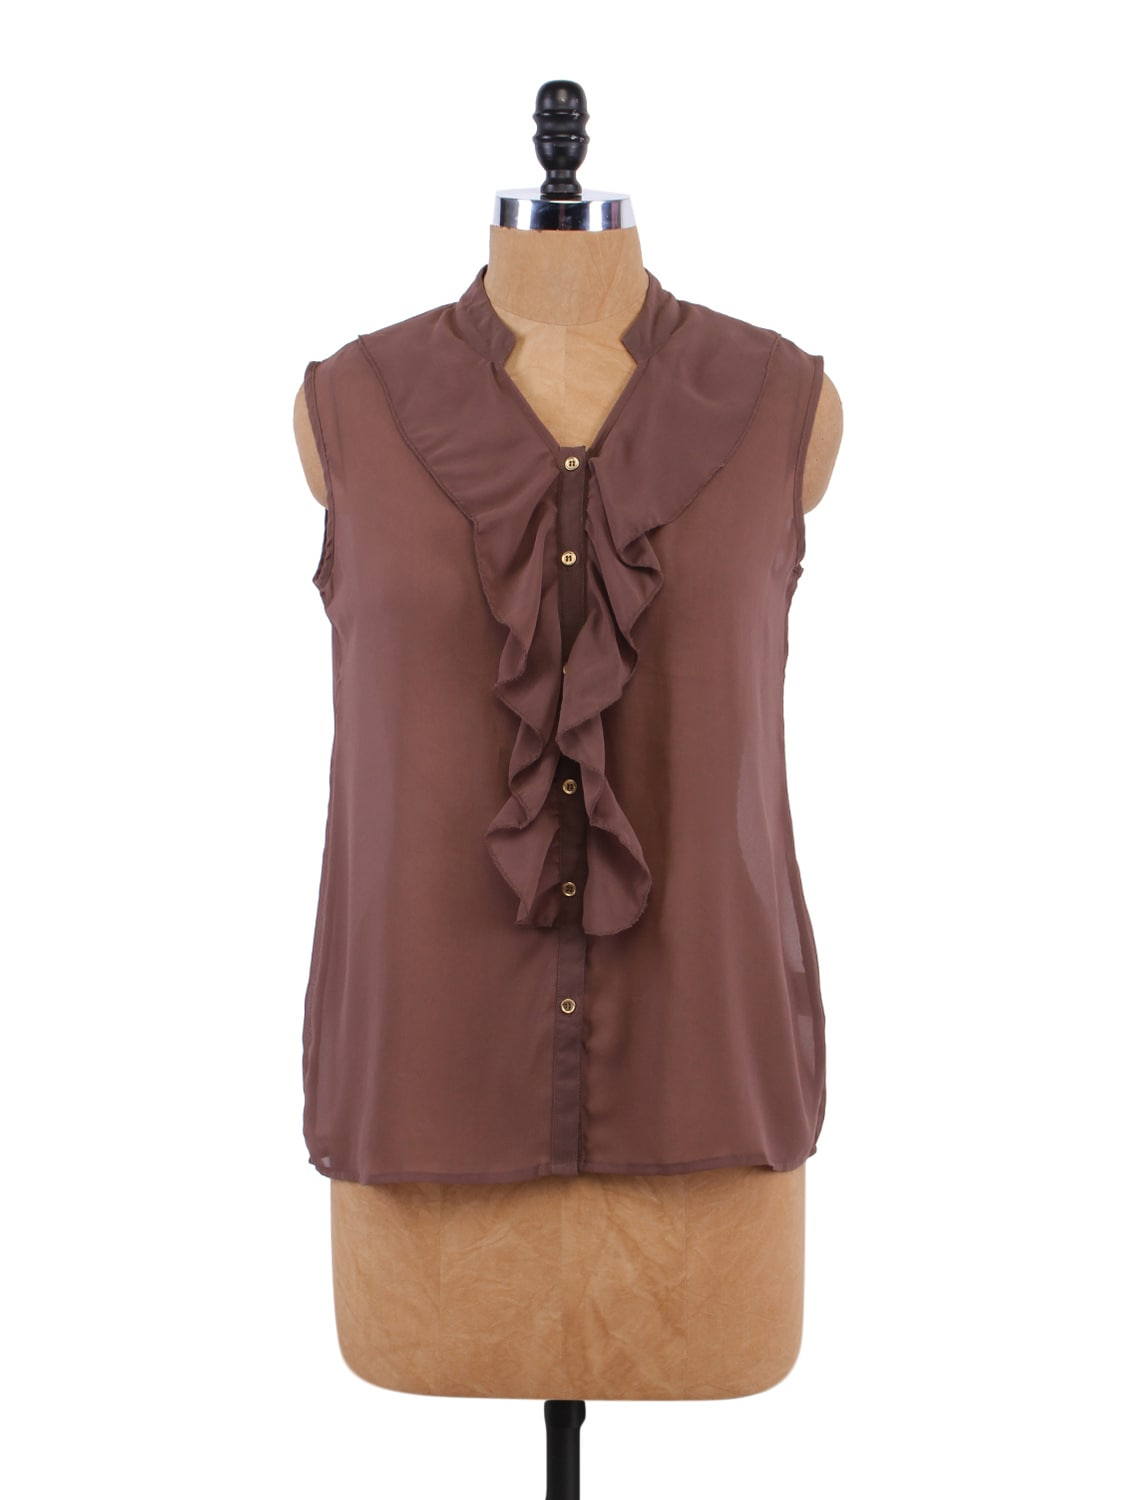 Solid Color Ruffle Neck Top - Sepia